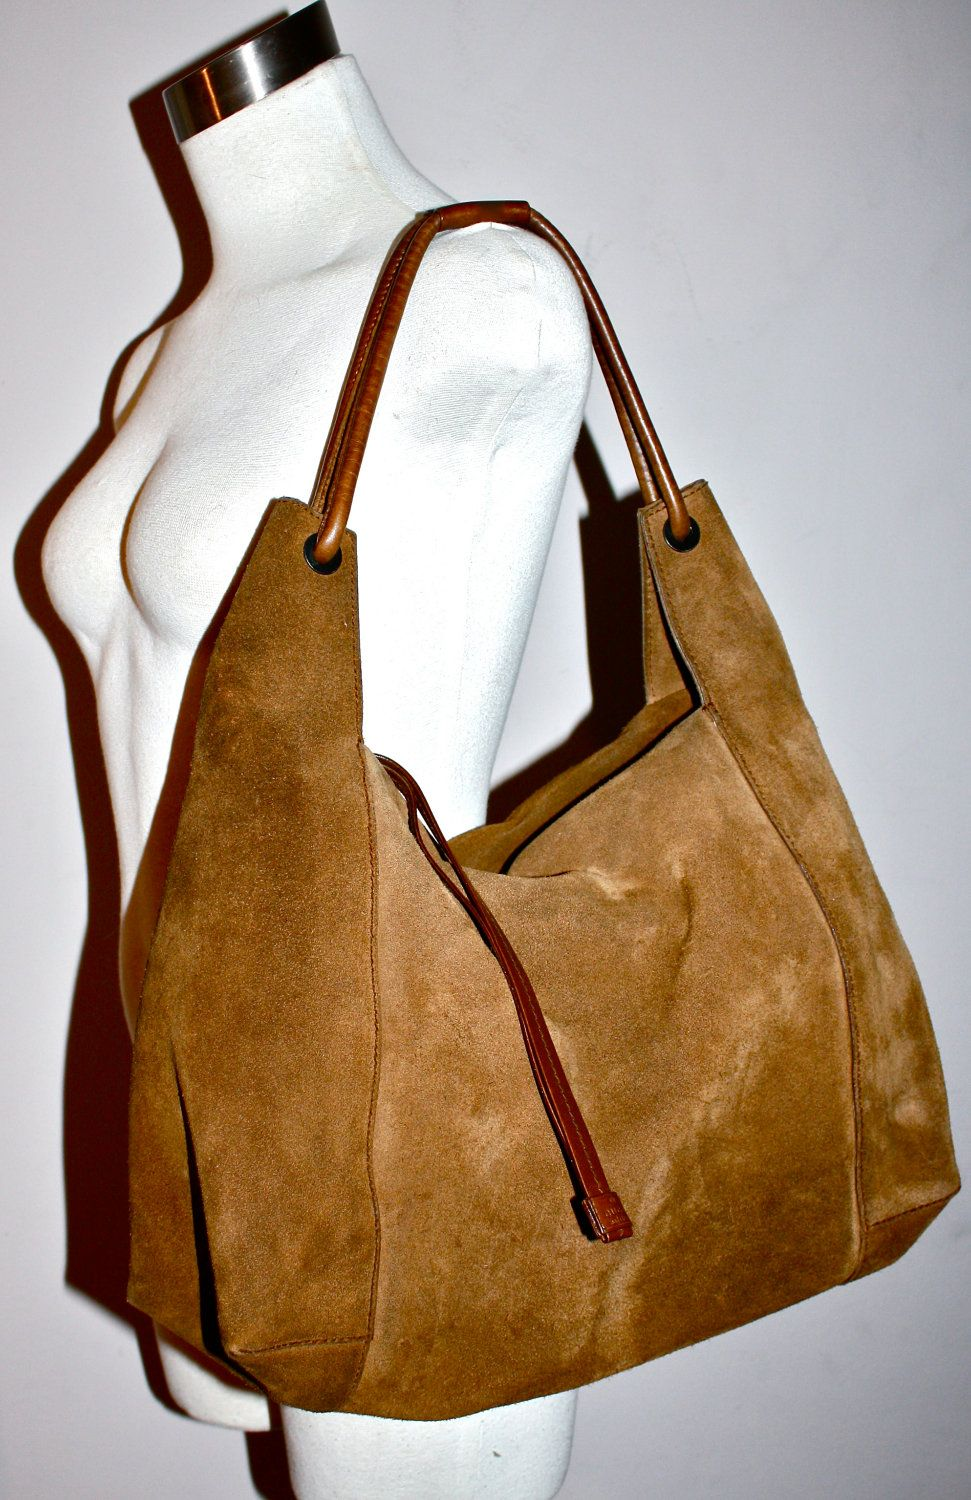 af7d26a25a58 Huge VINTAGE GUCCI Authentic Brown Suede Slouchy Leather Hobo Bag ...